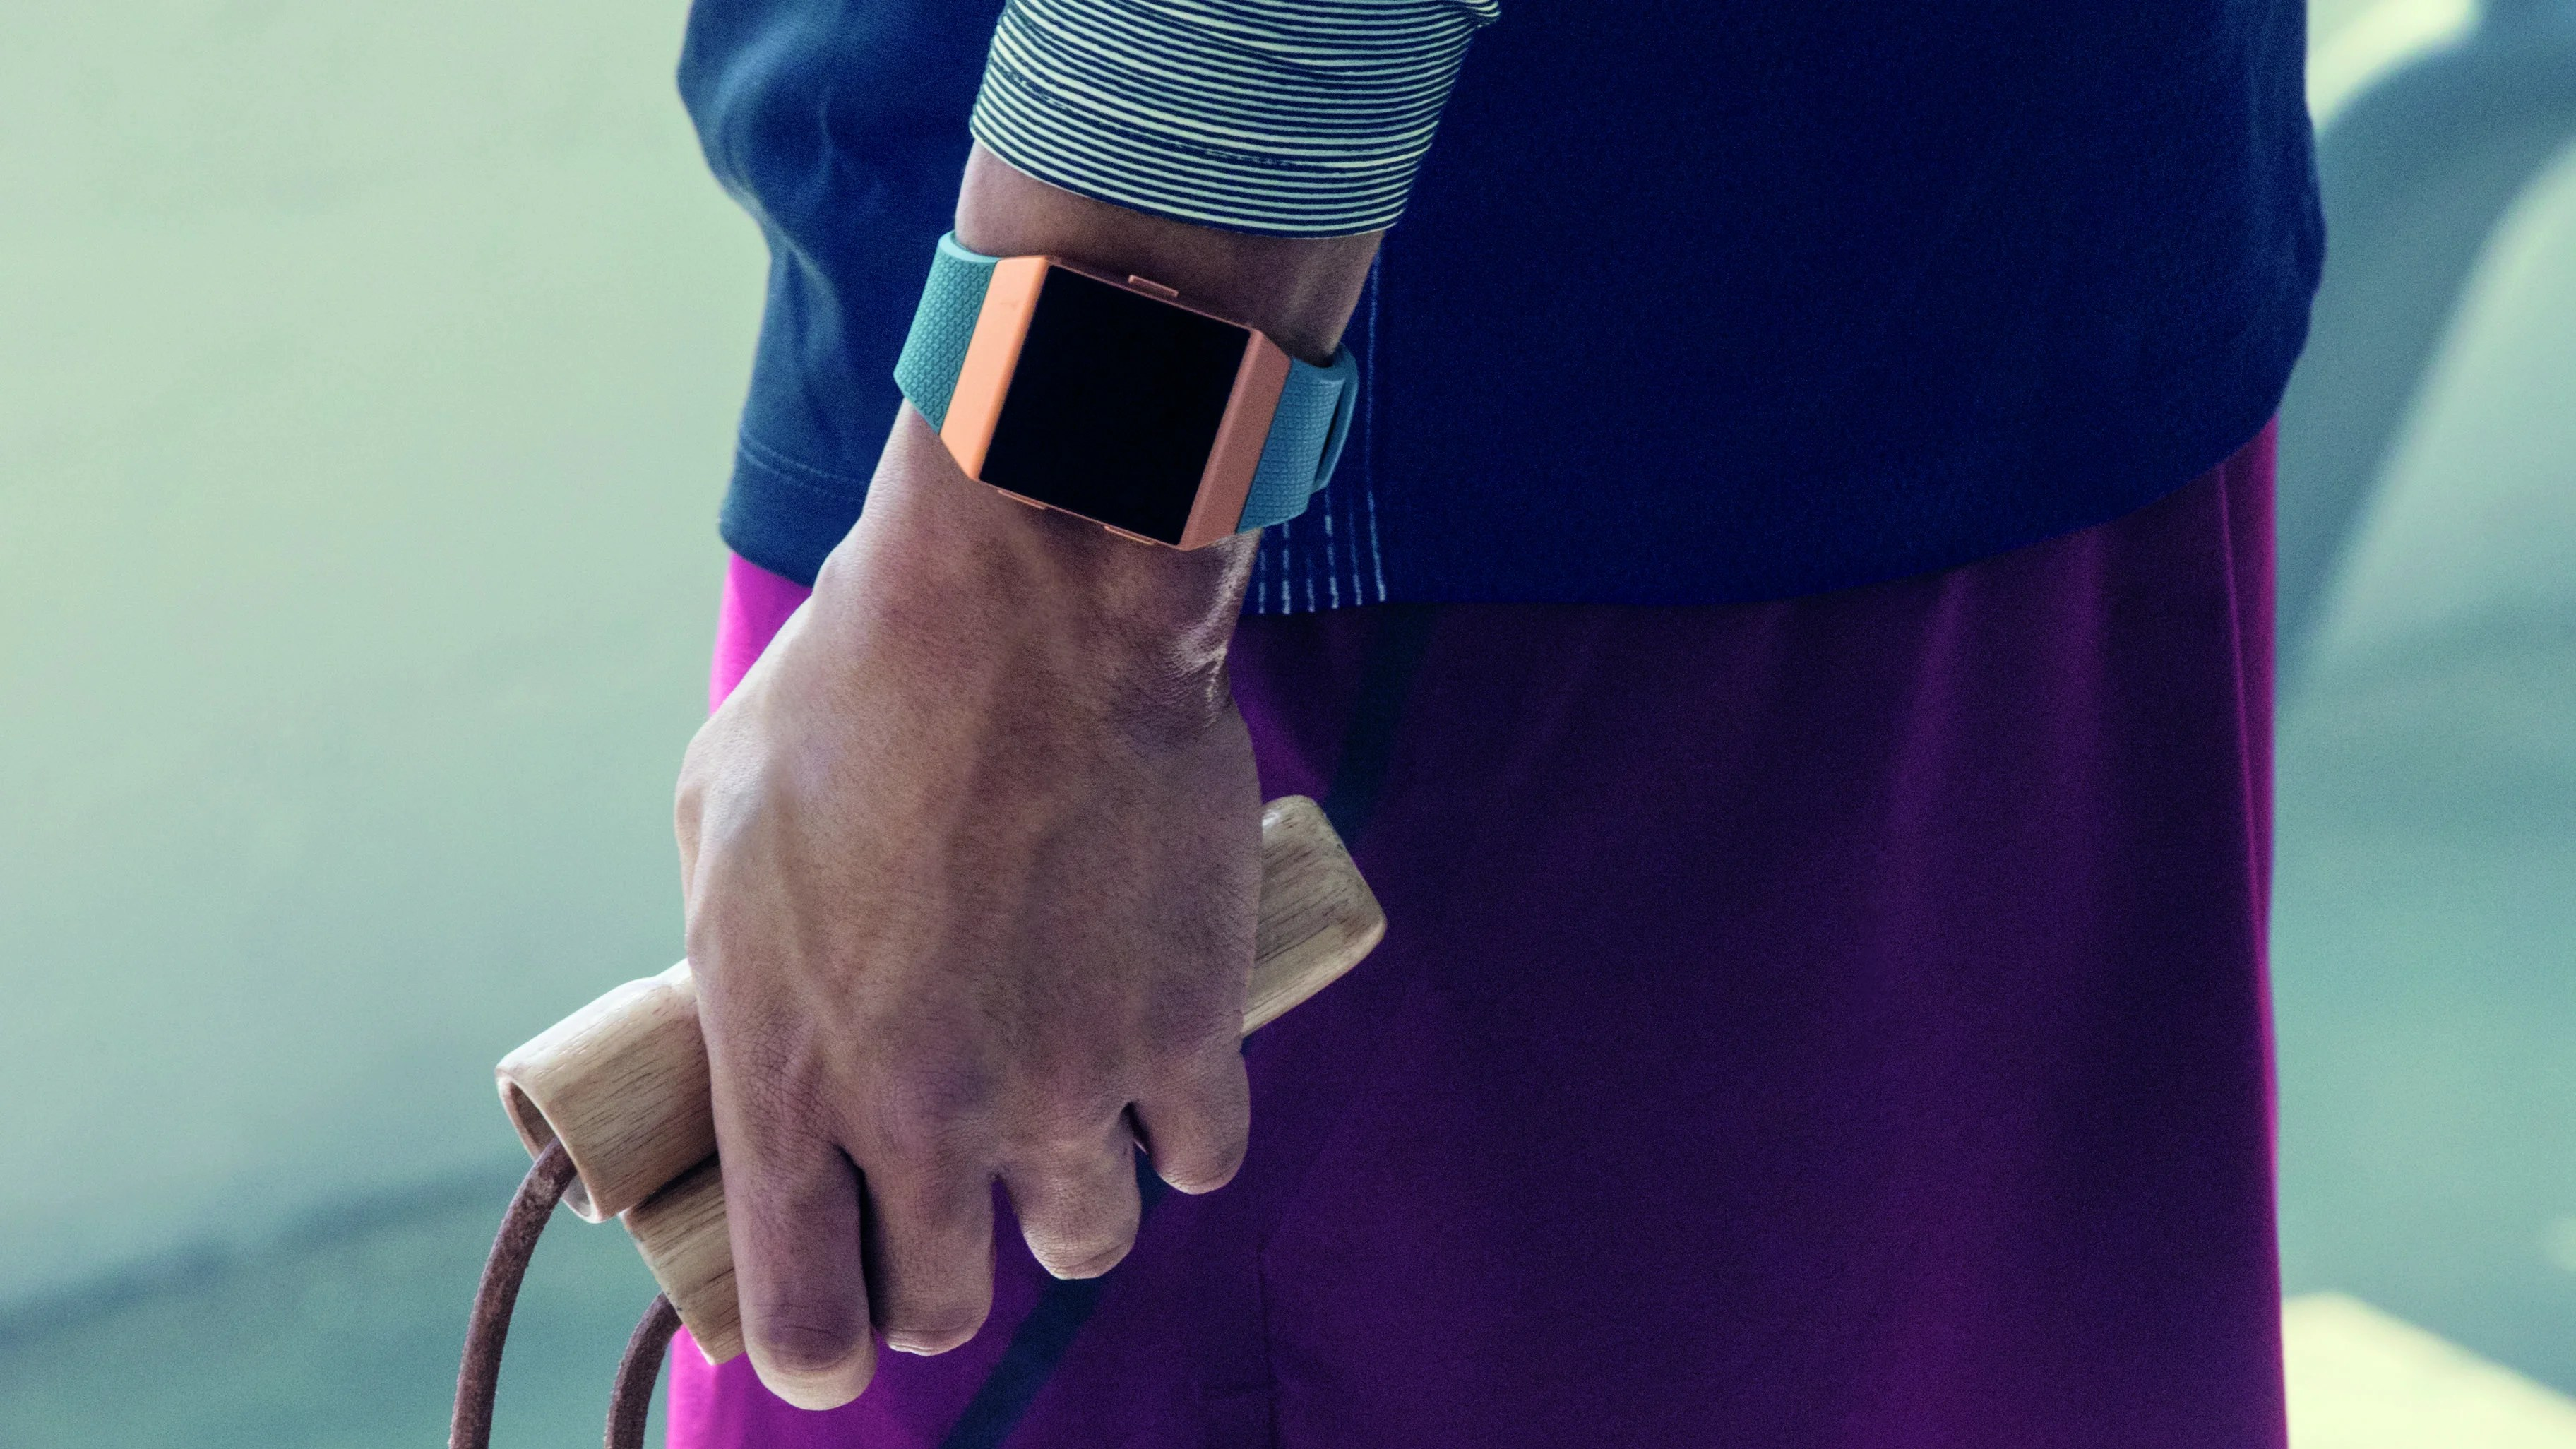 Fitbit Ionic Vs Apple Watch 2 Which Fitness Smartwatch